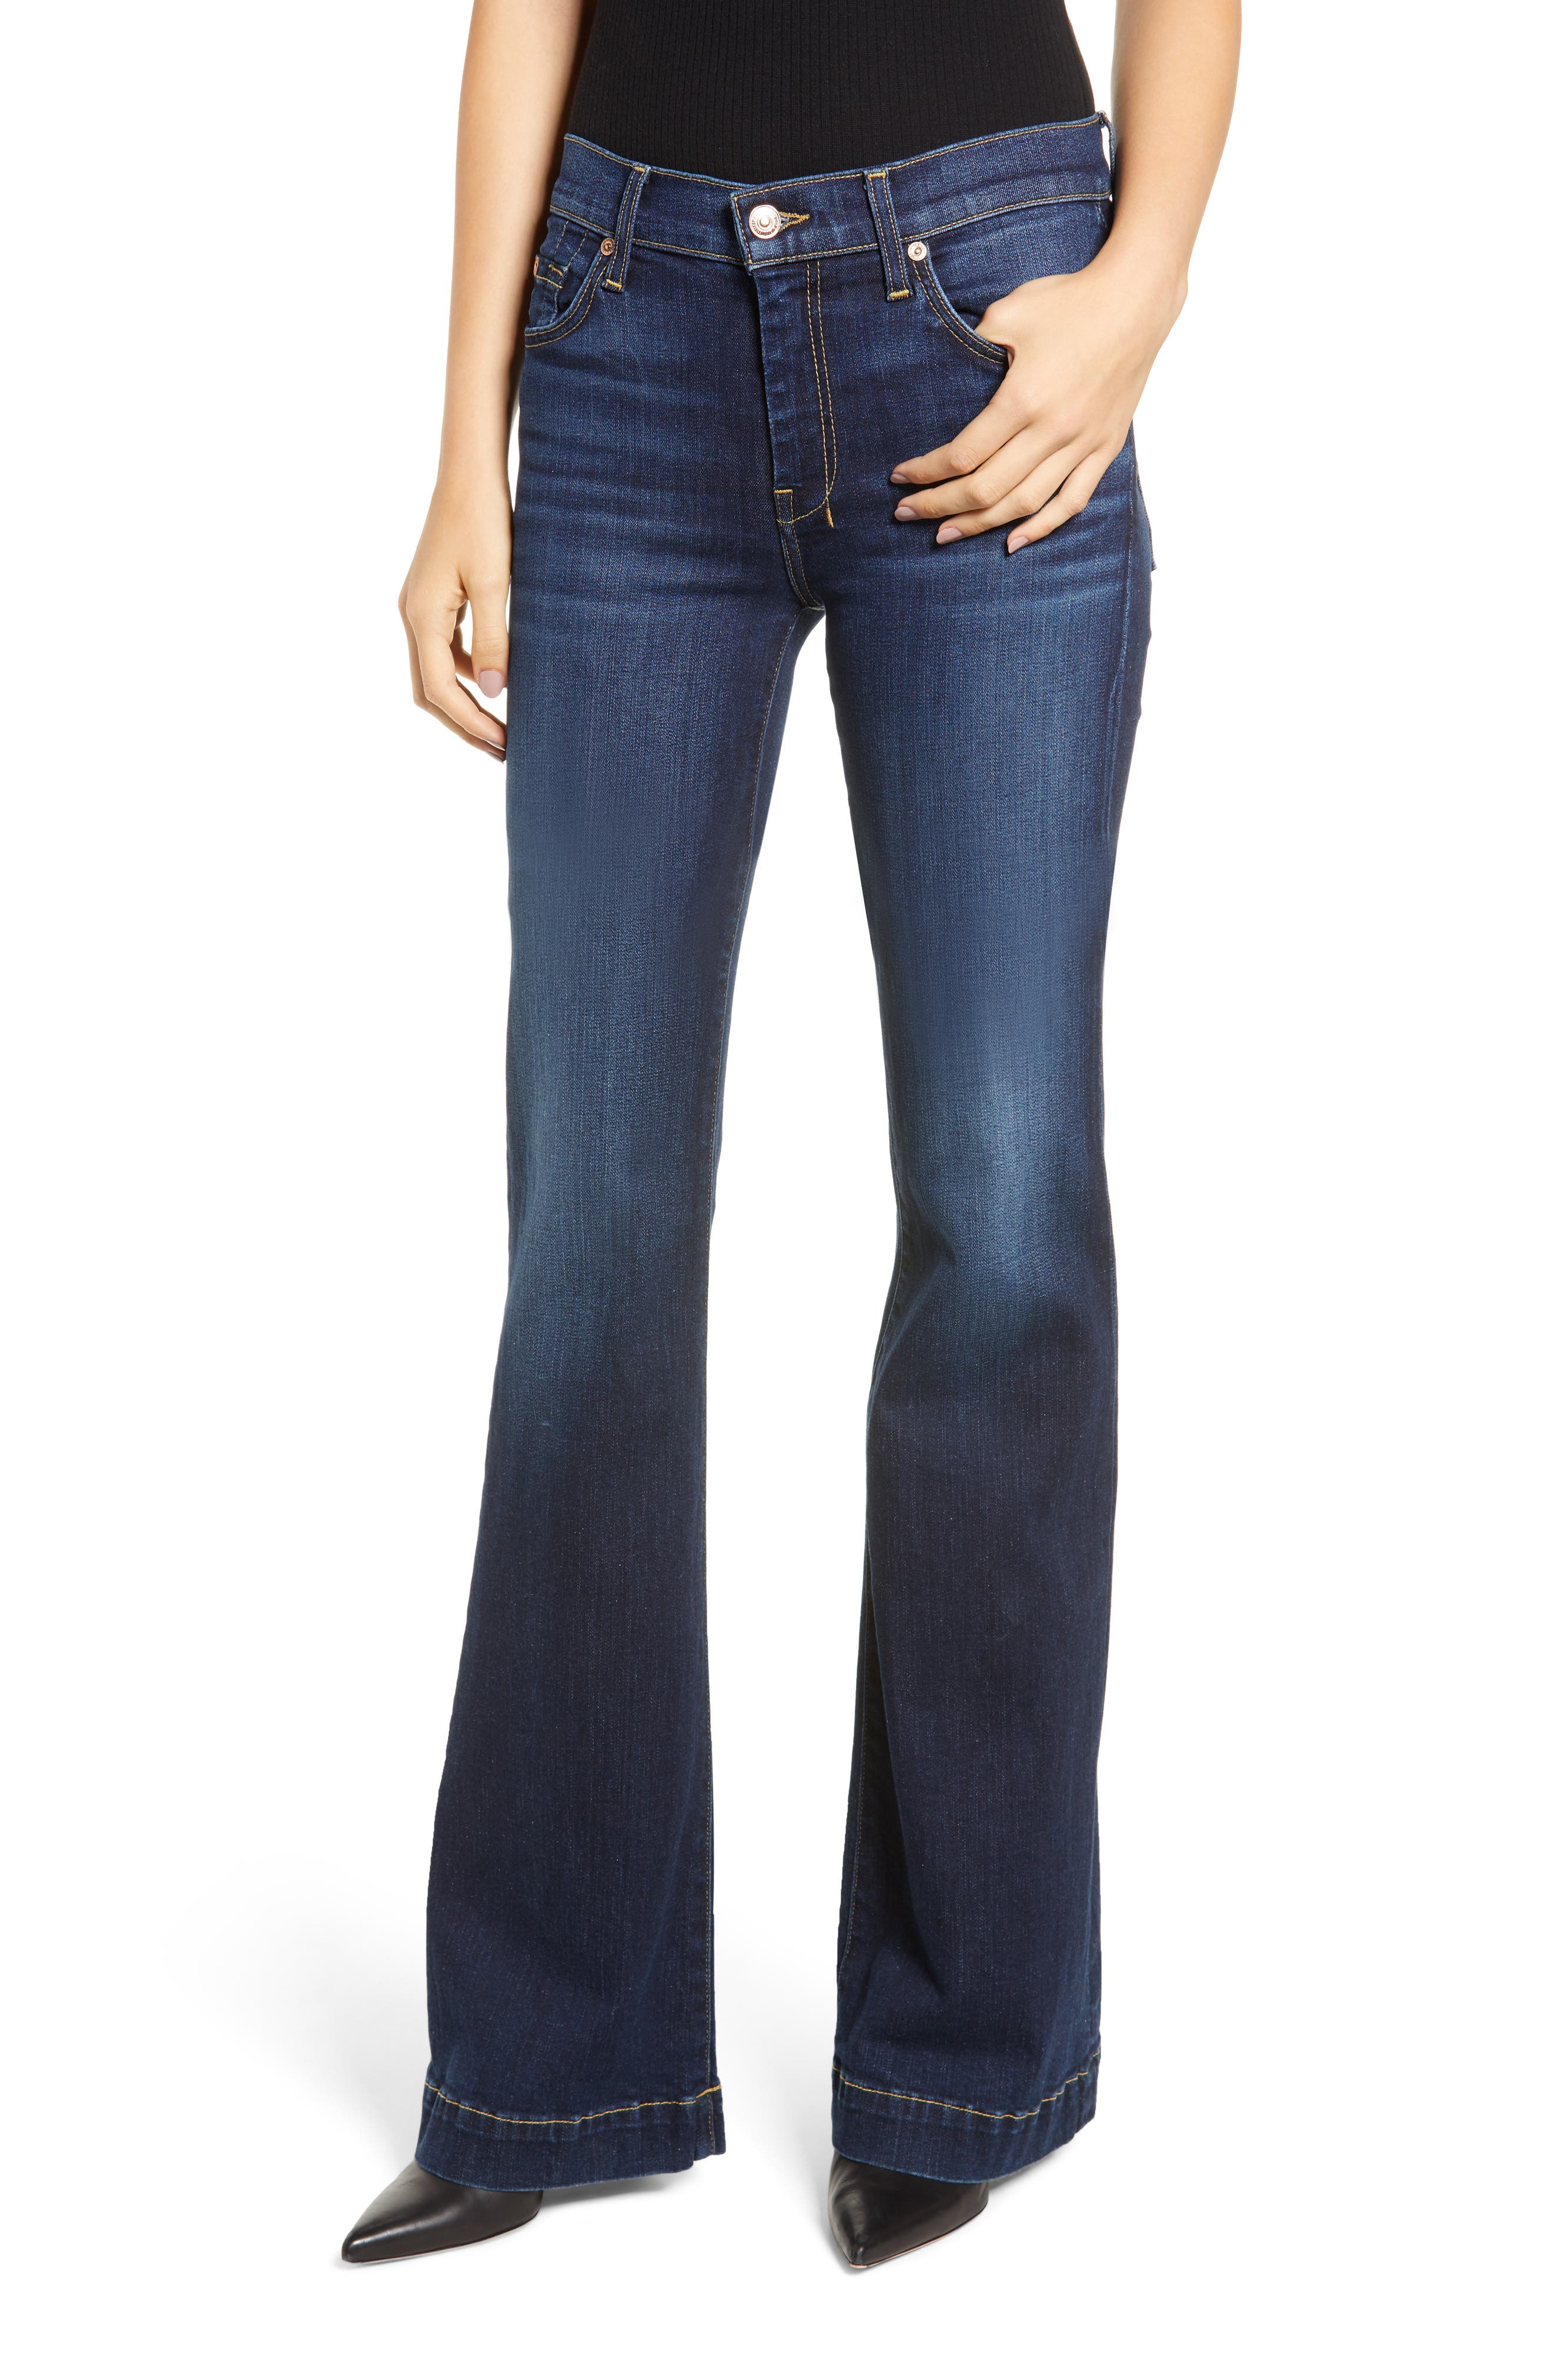 7 FOR ALL MANKIND<SUP>®</SUP>, Dojo Wide Leg Jeans, Main thumbnail 1, color, AUTHENTIC FATE